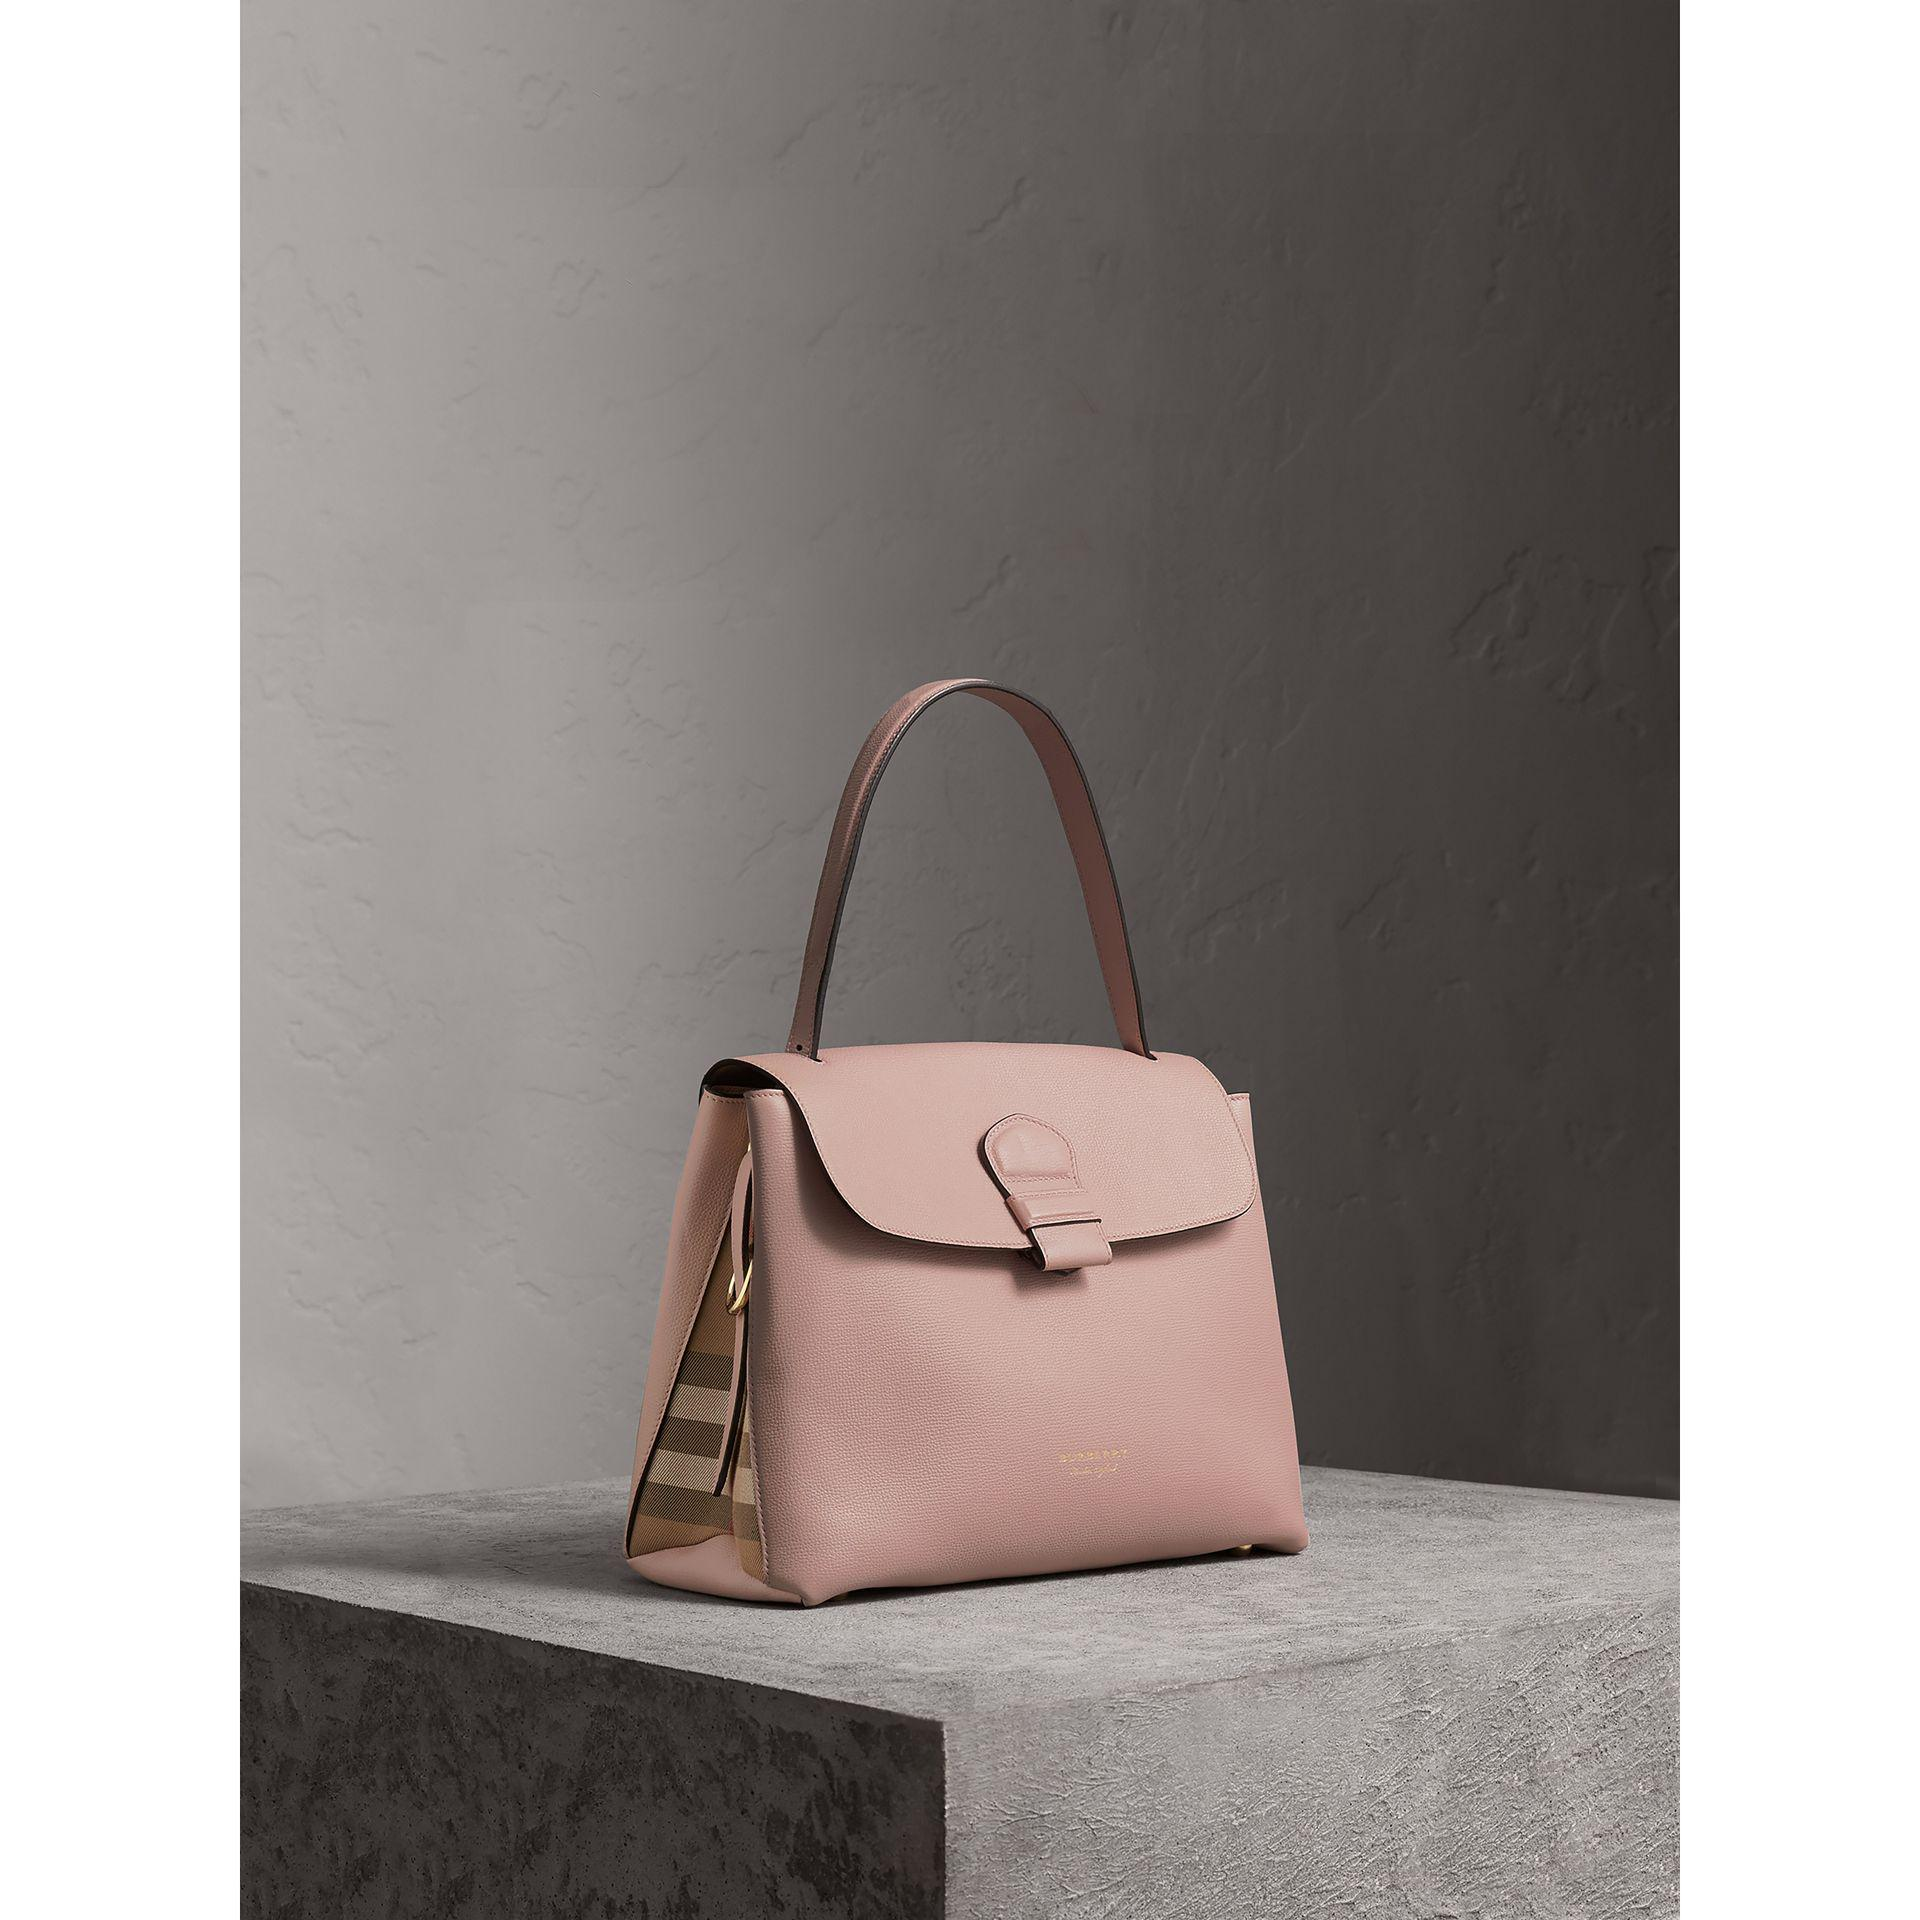 Lyst - Burberry Medium Grainy Leather And House Check Tote Bag b2b7f32e17576